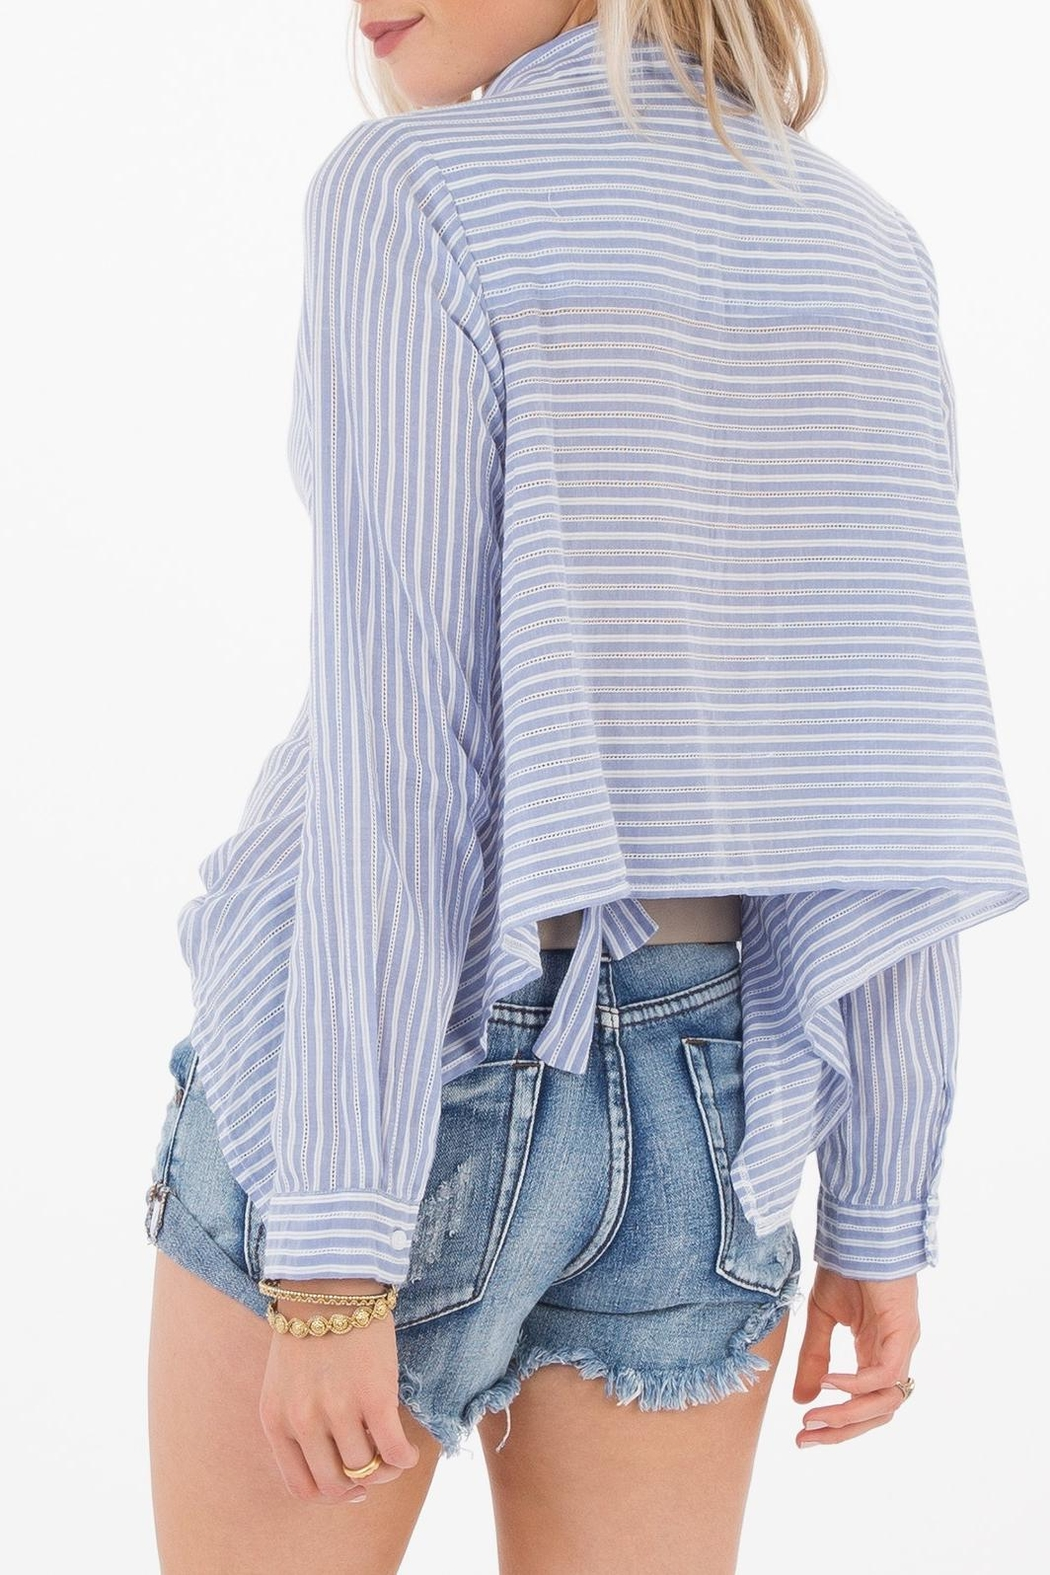 White Crow Striped Collared Shirt - Front Full Image